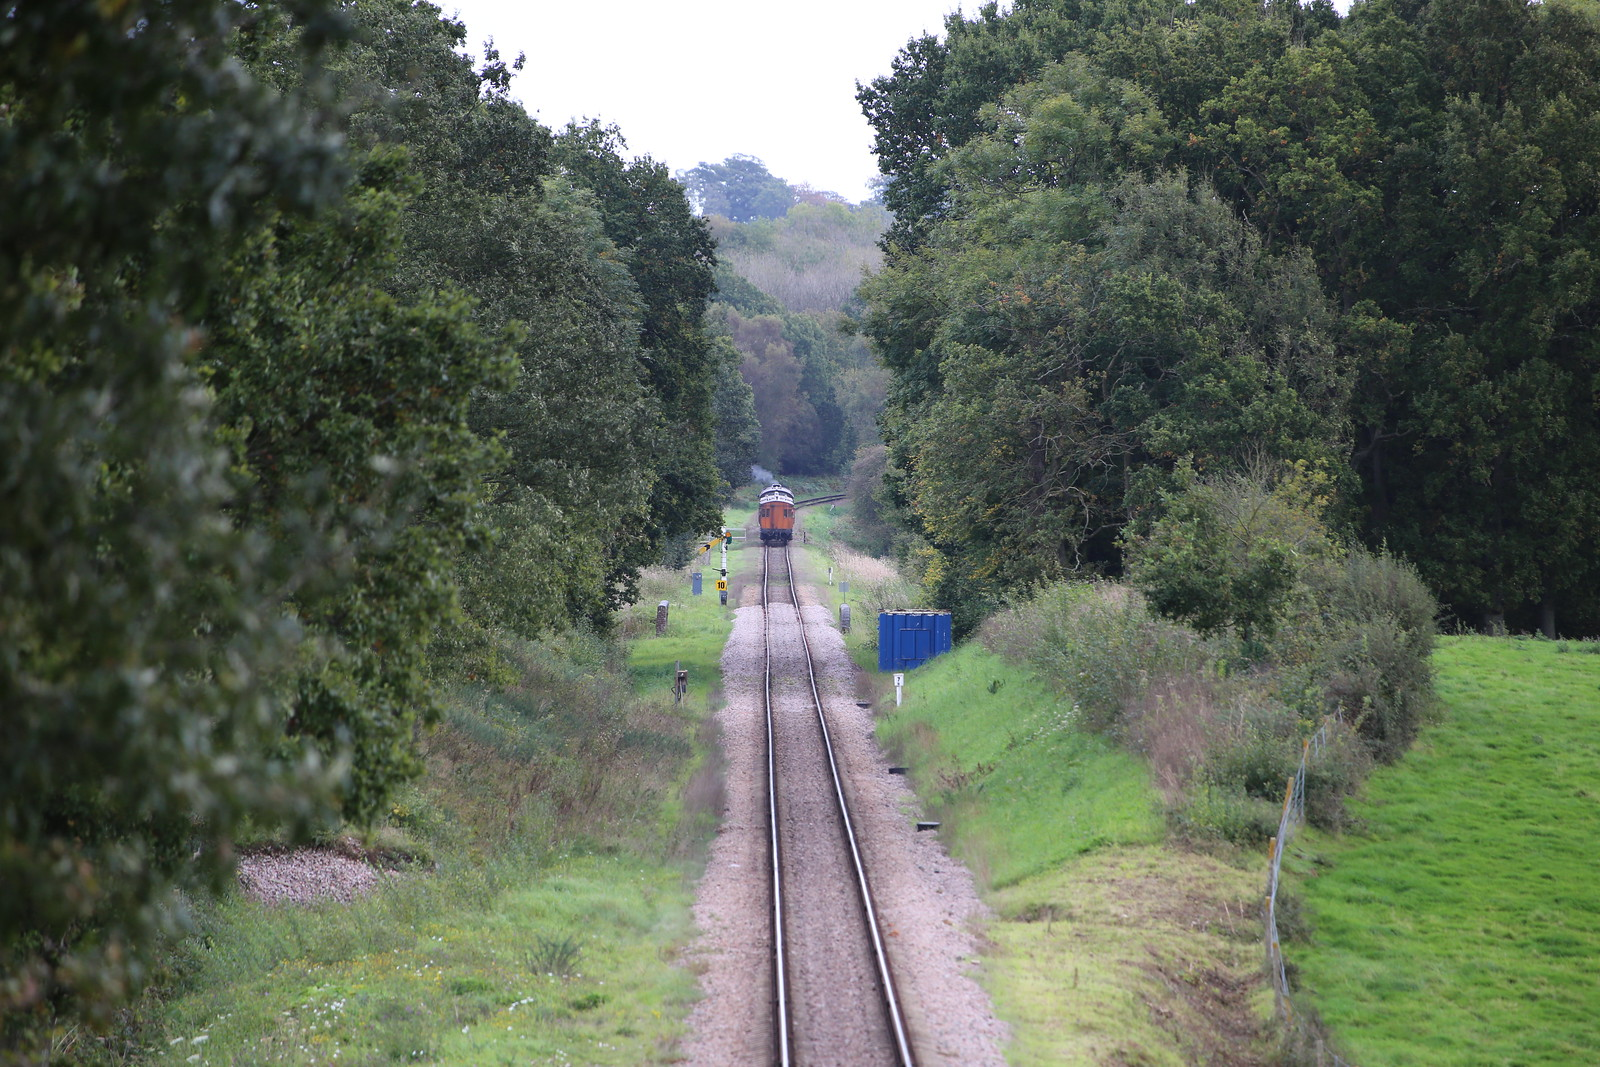 Distant Camelot steam train